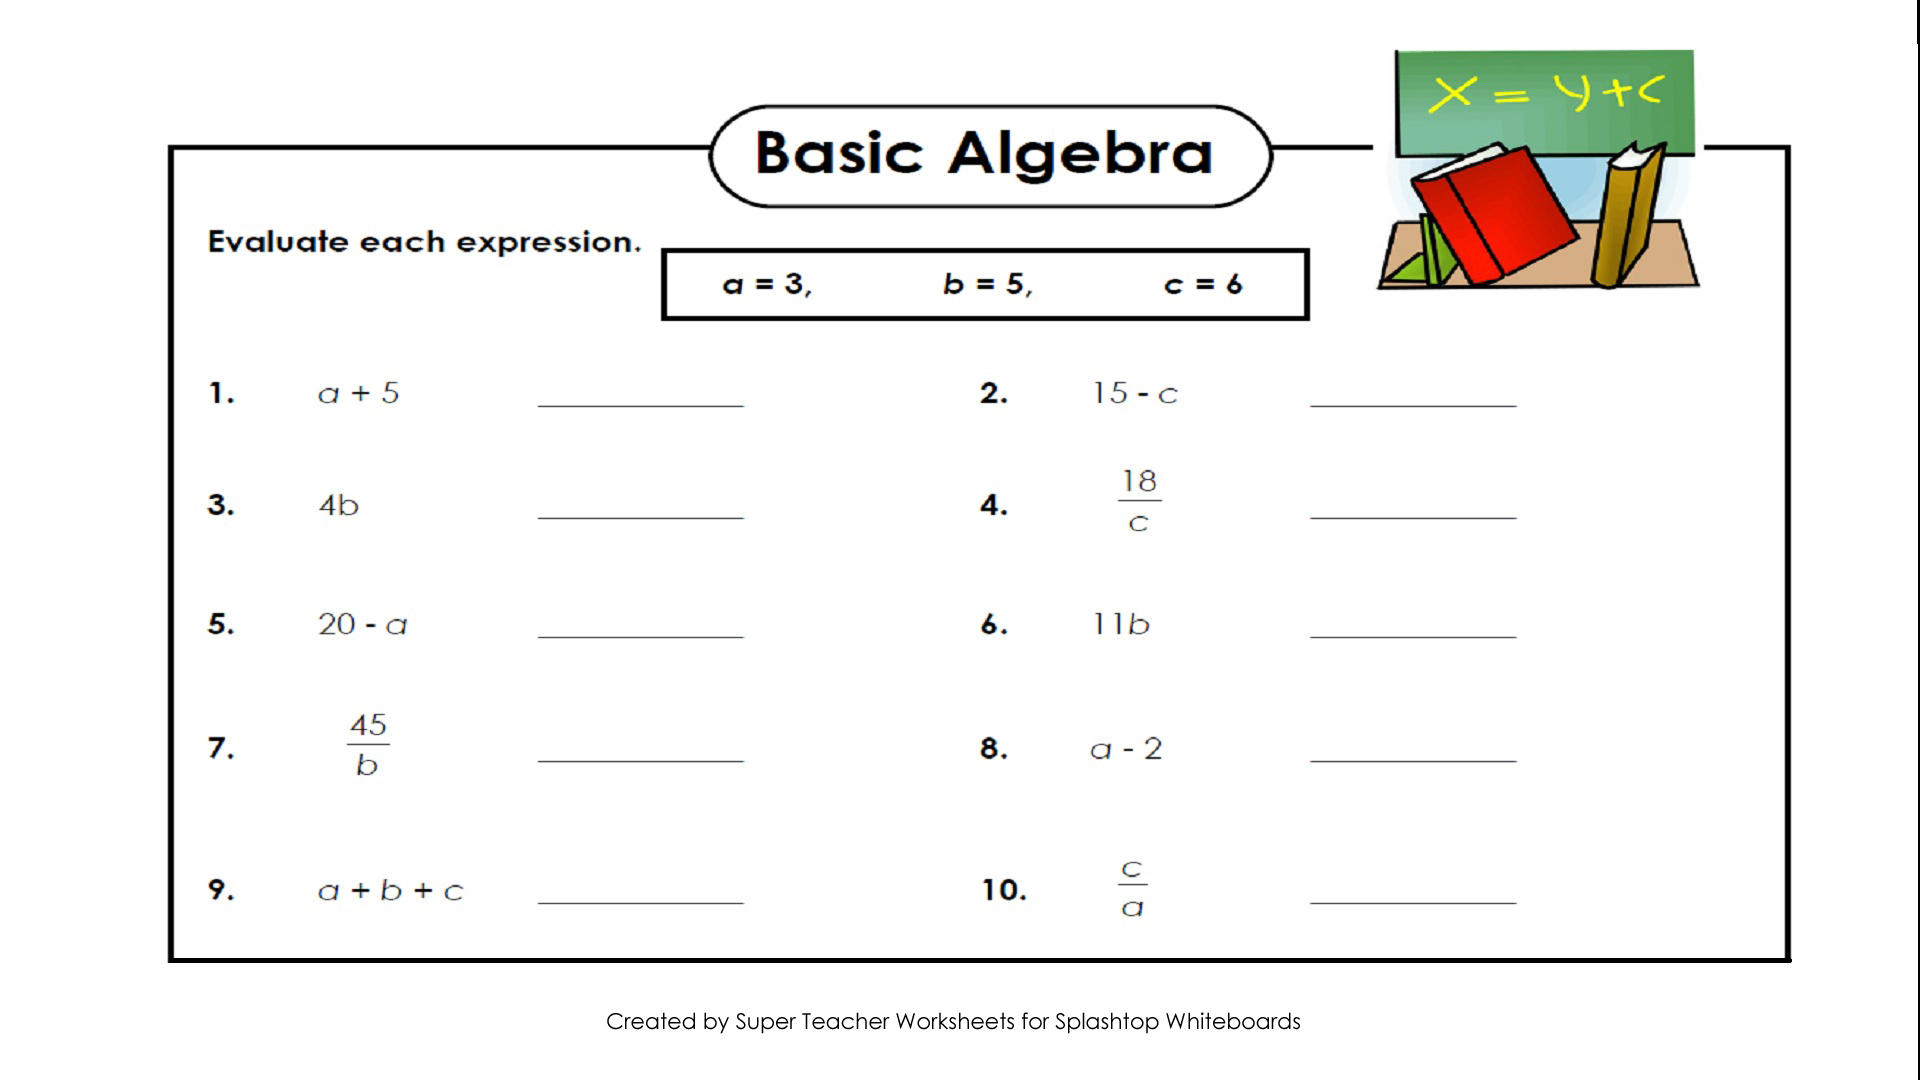 Worksheets Super Teacher Worksheets Answers splashtop whiteboard background graphics algebra basic